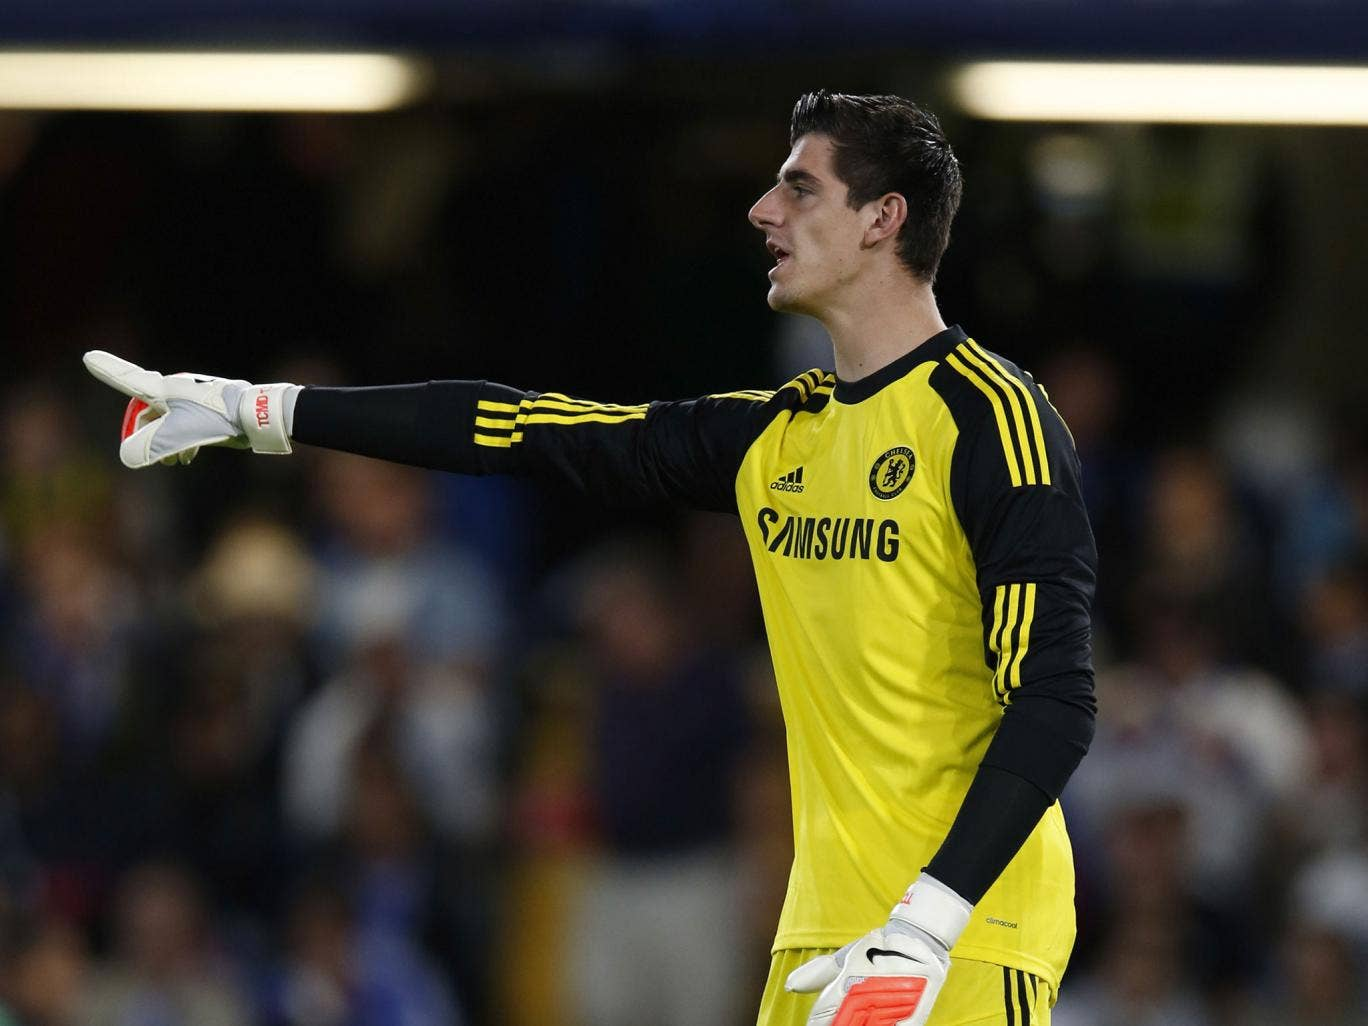 Thibaut Courtois played 90 minutes against Real Sociedad but Jose Mourinho will wait on No 1 choice